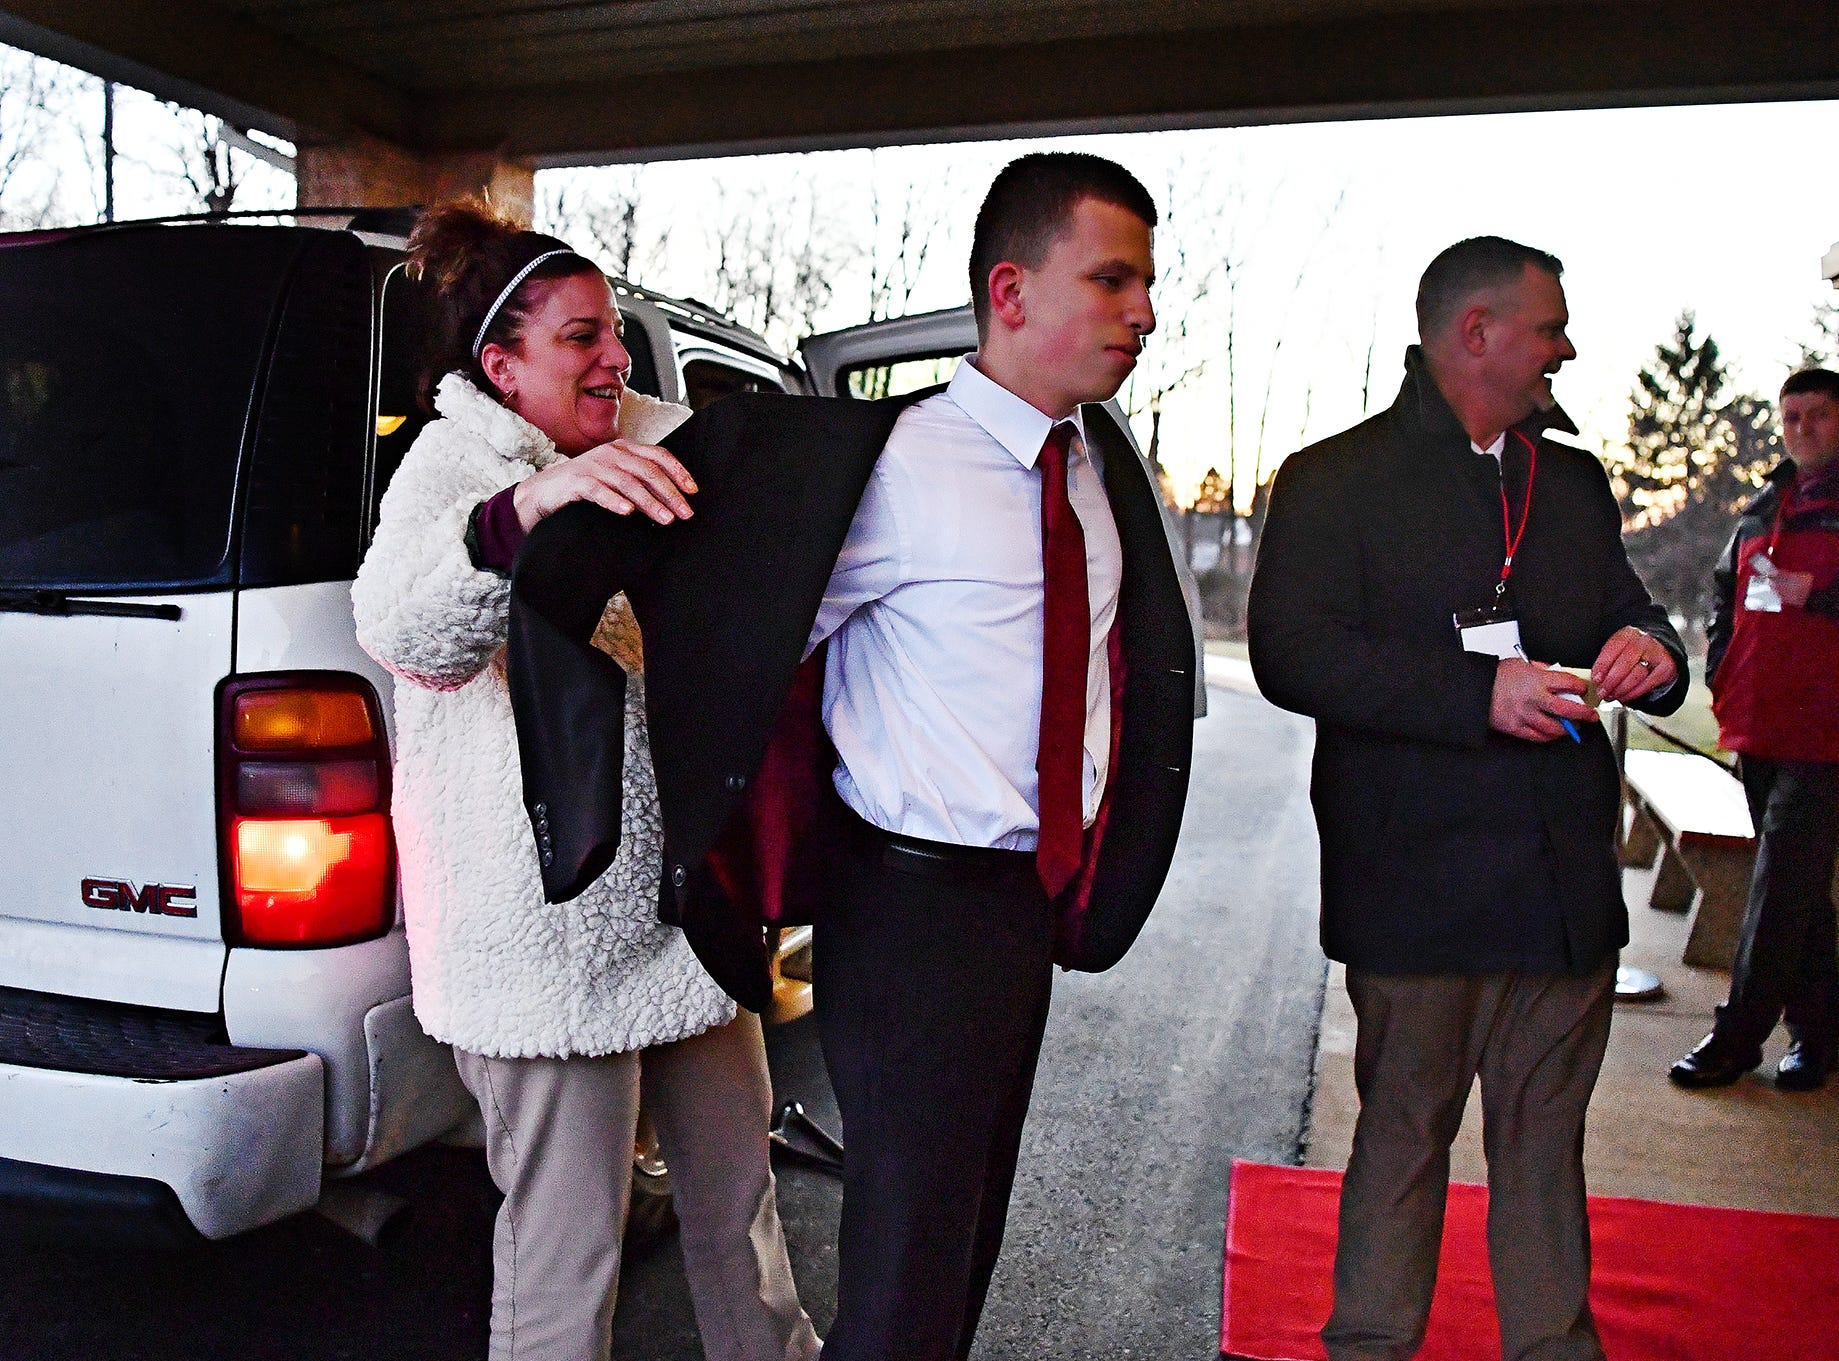 From left, Natalie D'Antoni, helps her son Frank D'Antoni, 18, with his suit coat as she drops him off for A Night to Shine, a Tim Tebow Foundation sponsored prom for people with special needs, at Friendship Community Church in Dover Friday, Feb. 8, 2019. Frank attends Lennard-Dale High School. Dawn J. Sagert photo